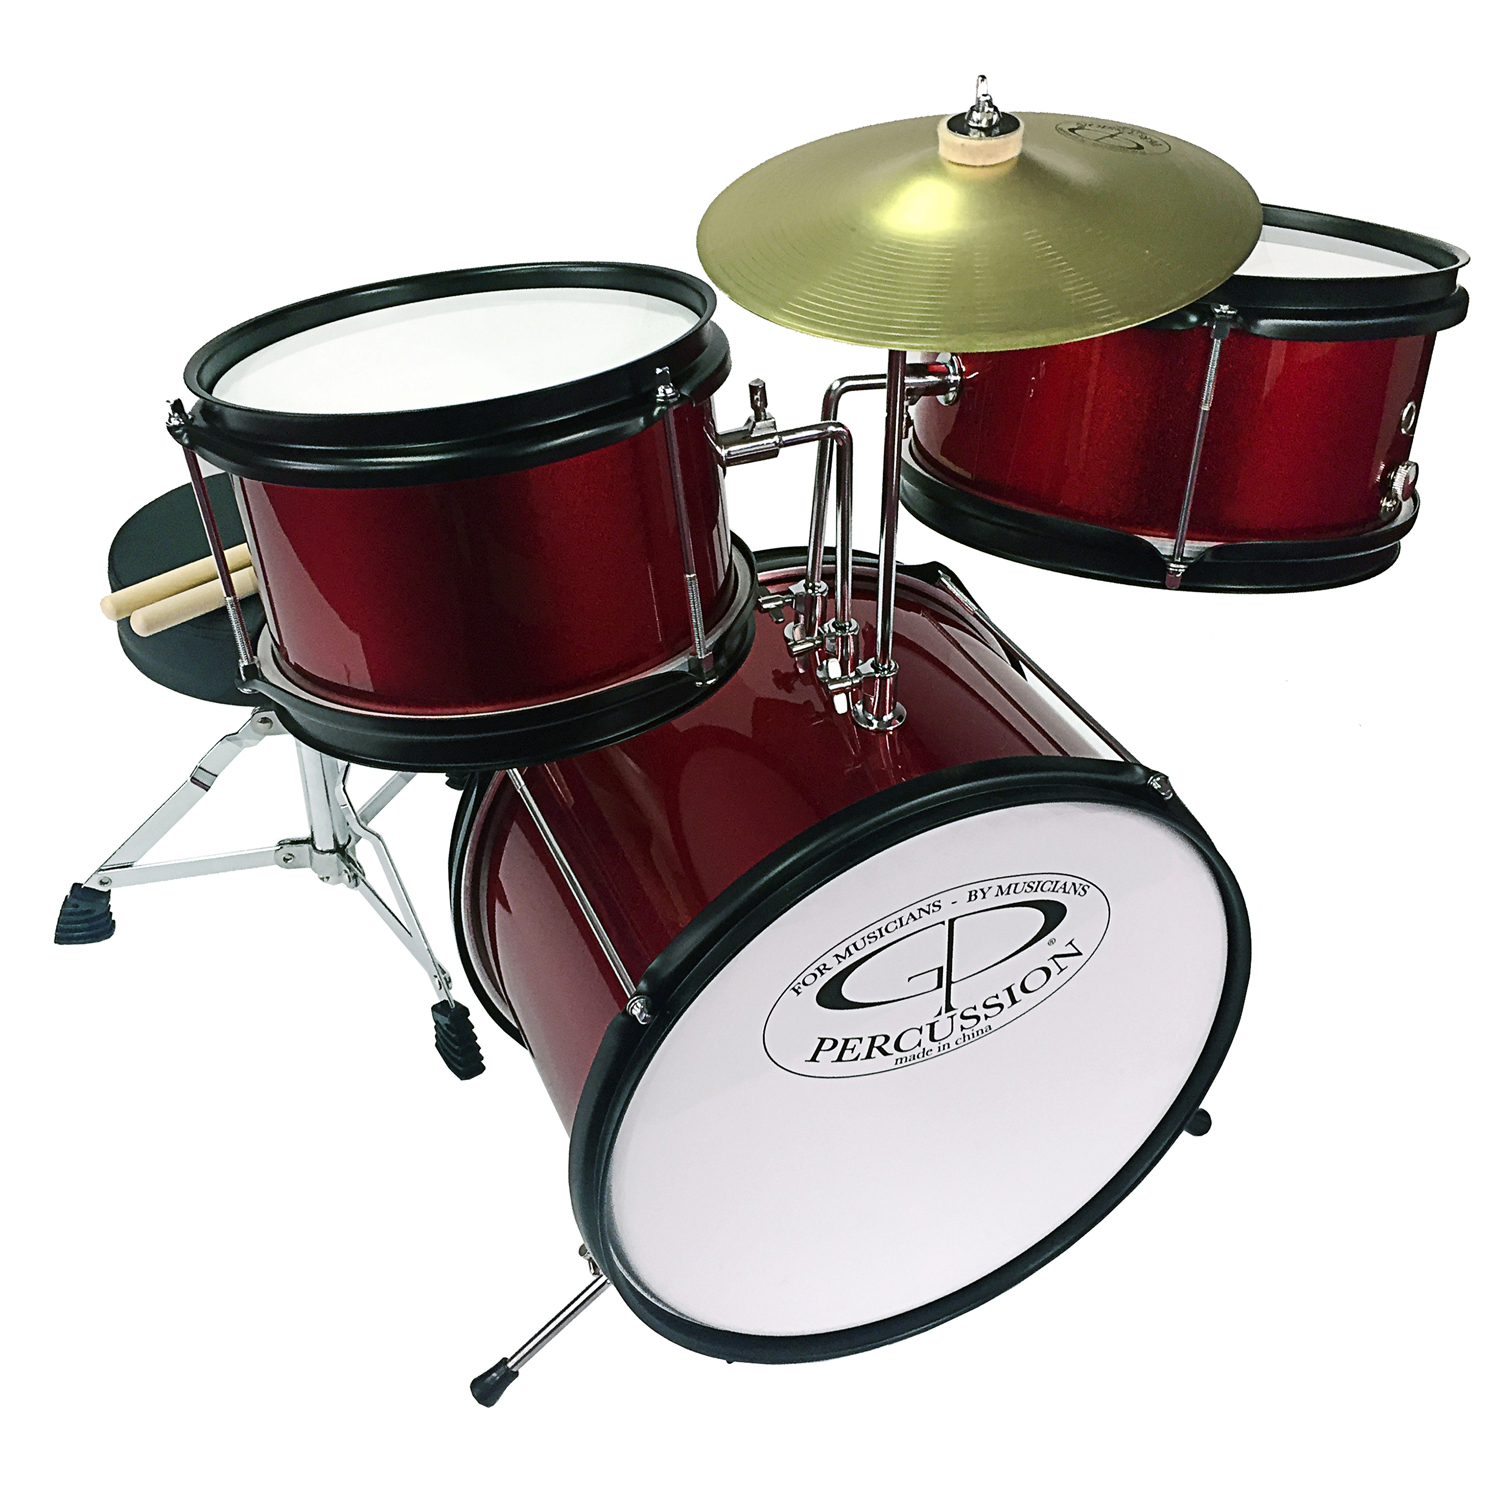 GP Percussion GP40WR 3-Piece Promotional Junior Drum Set in Wine Red